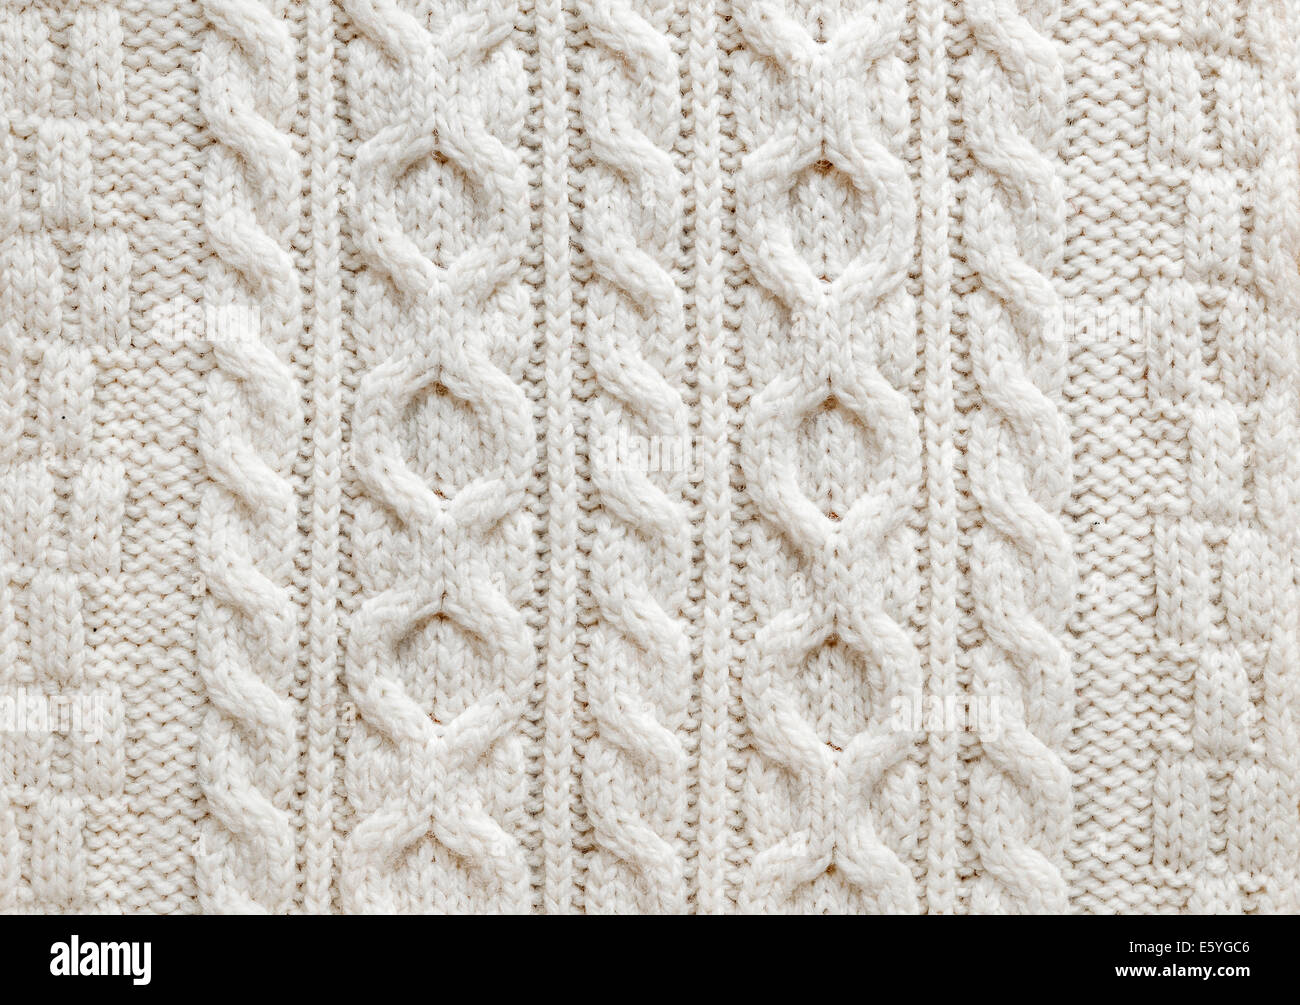 Cable Knit Wool Sweater Imágenes De Stock & Cable Knit Wool Sweater ...